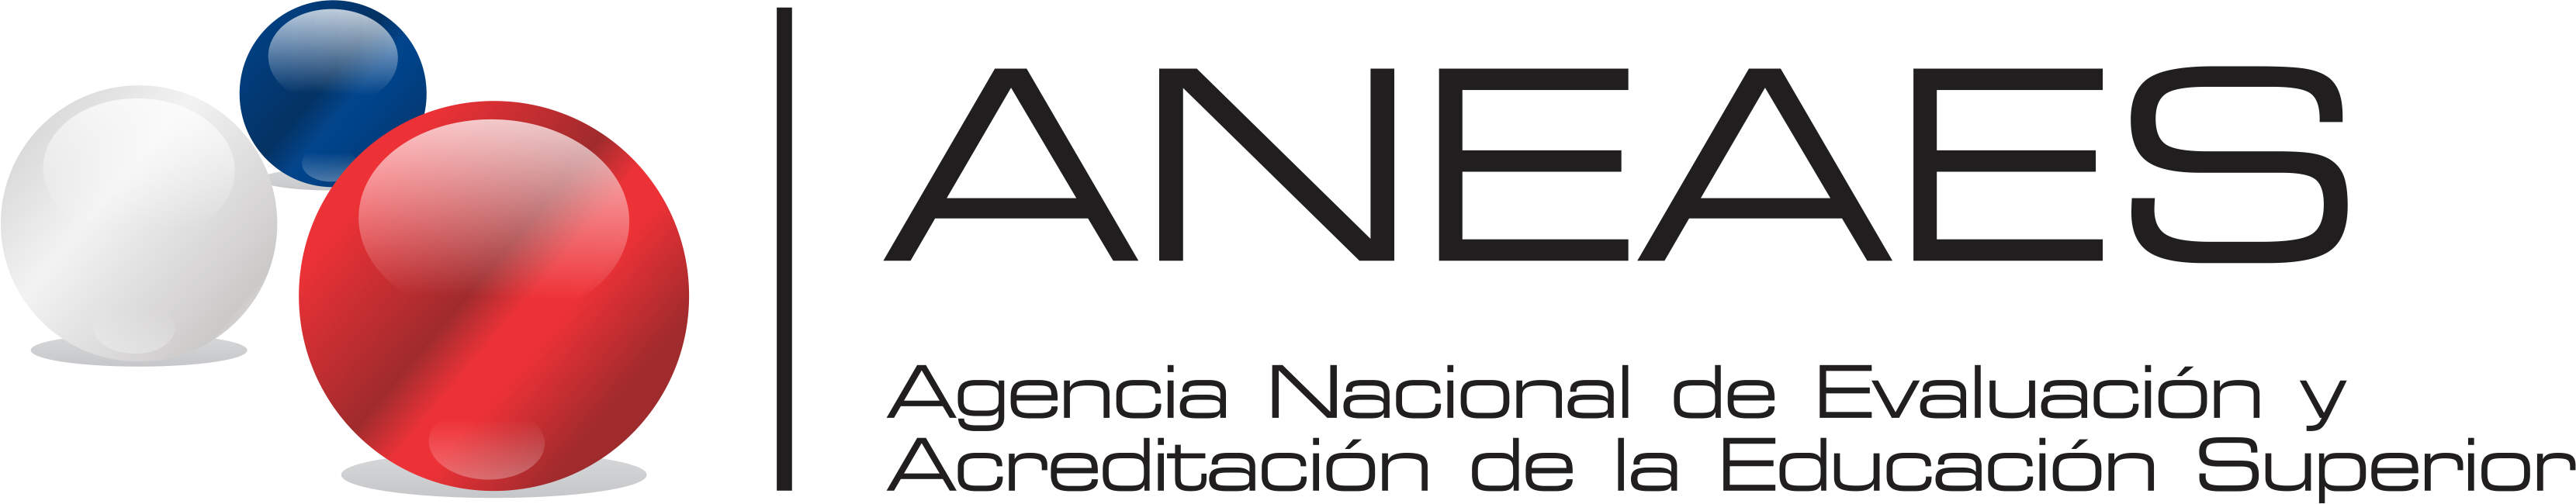 logo_aneaes.png